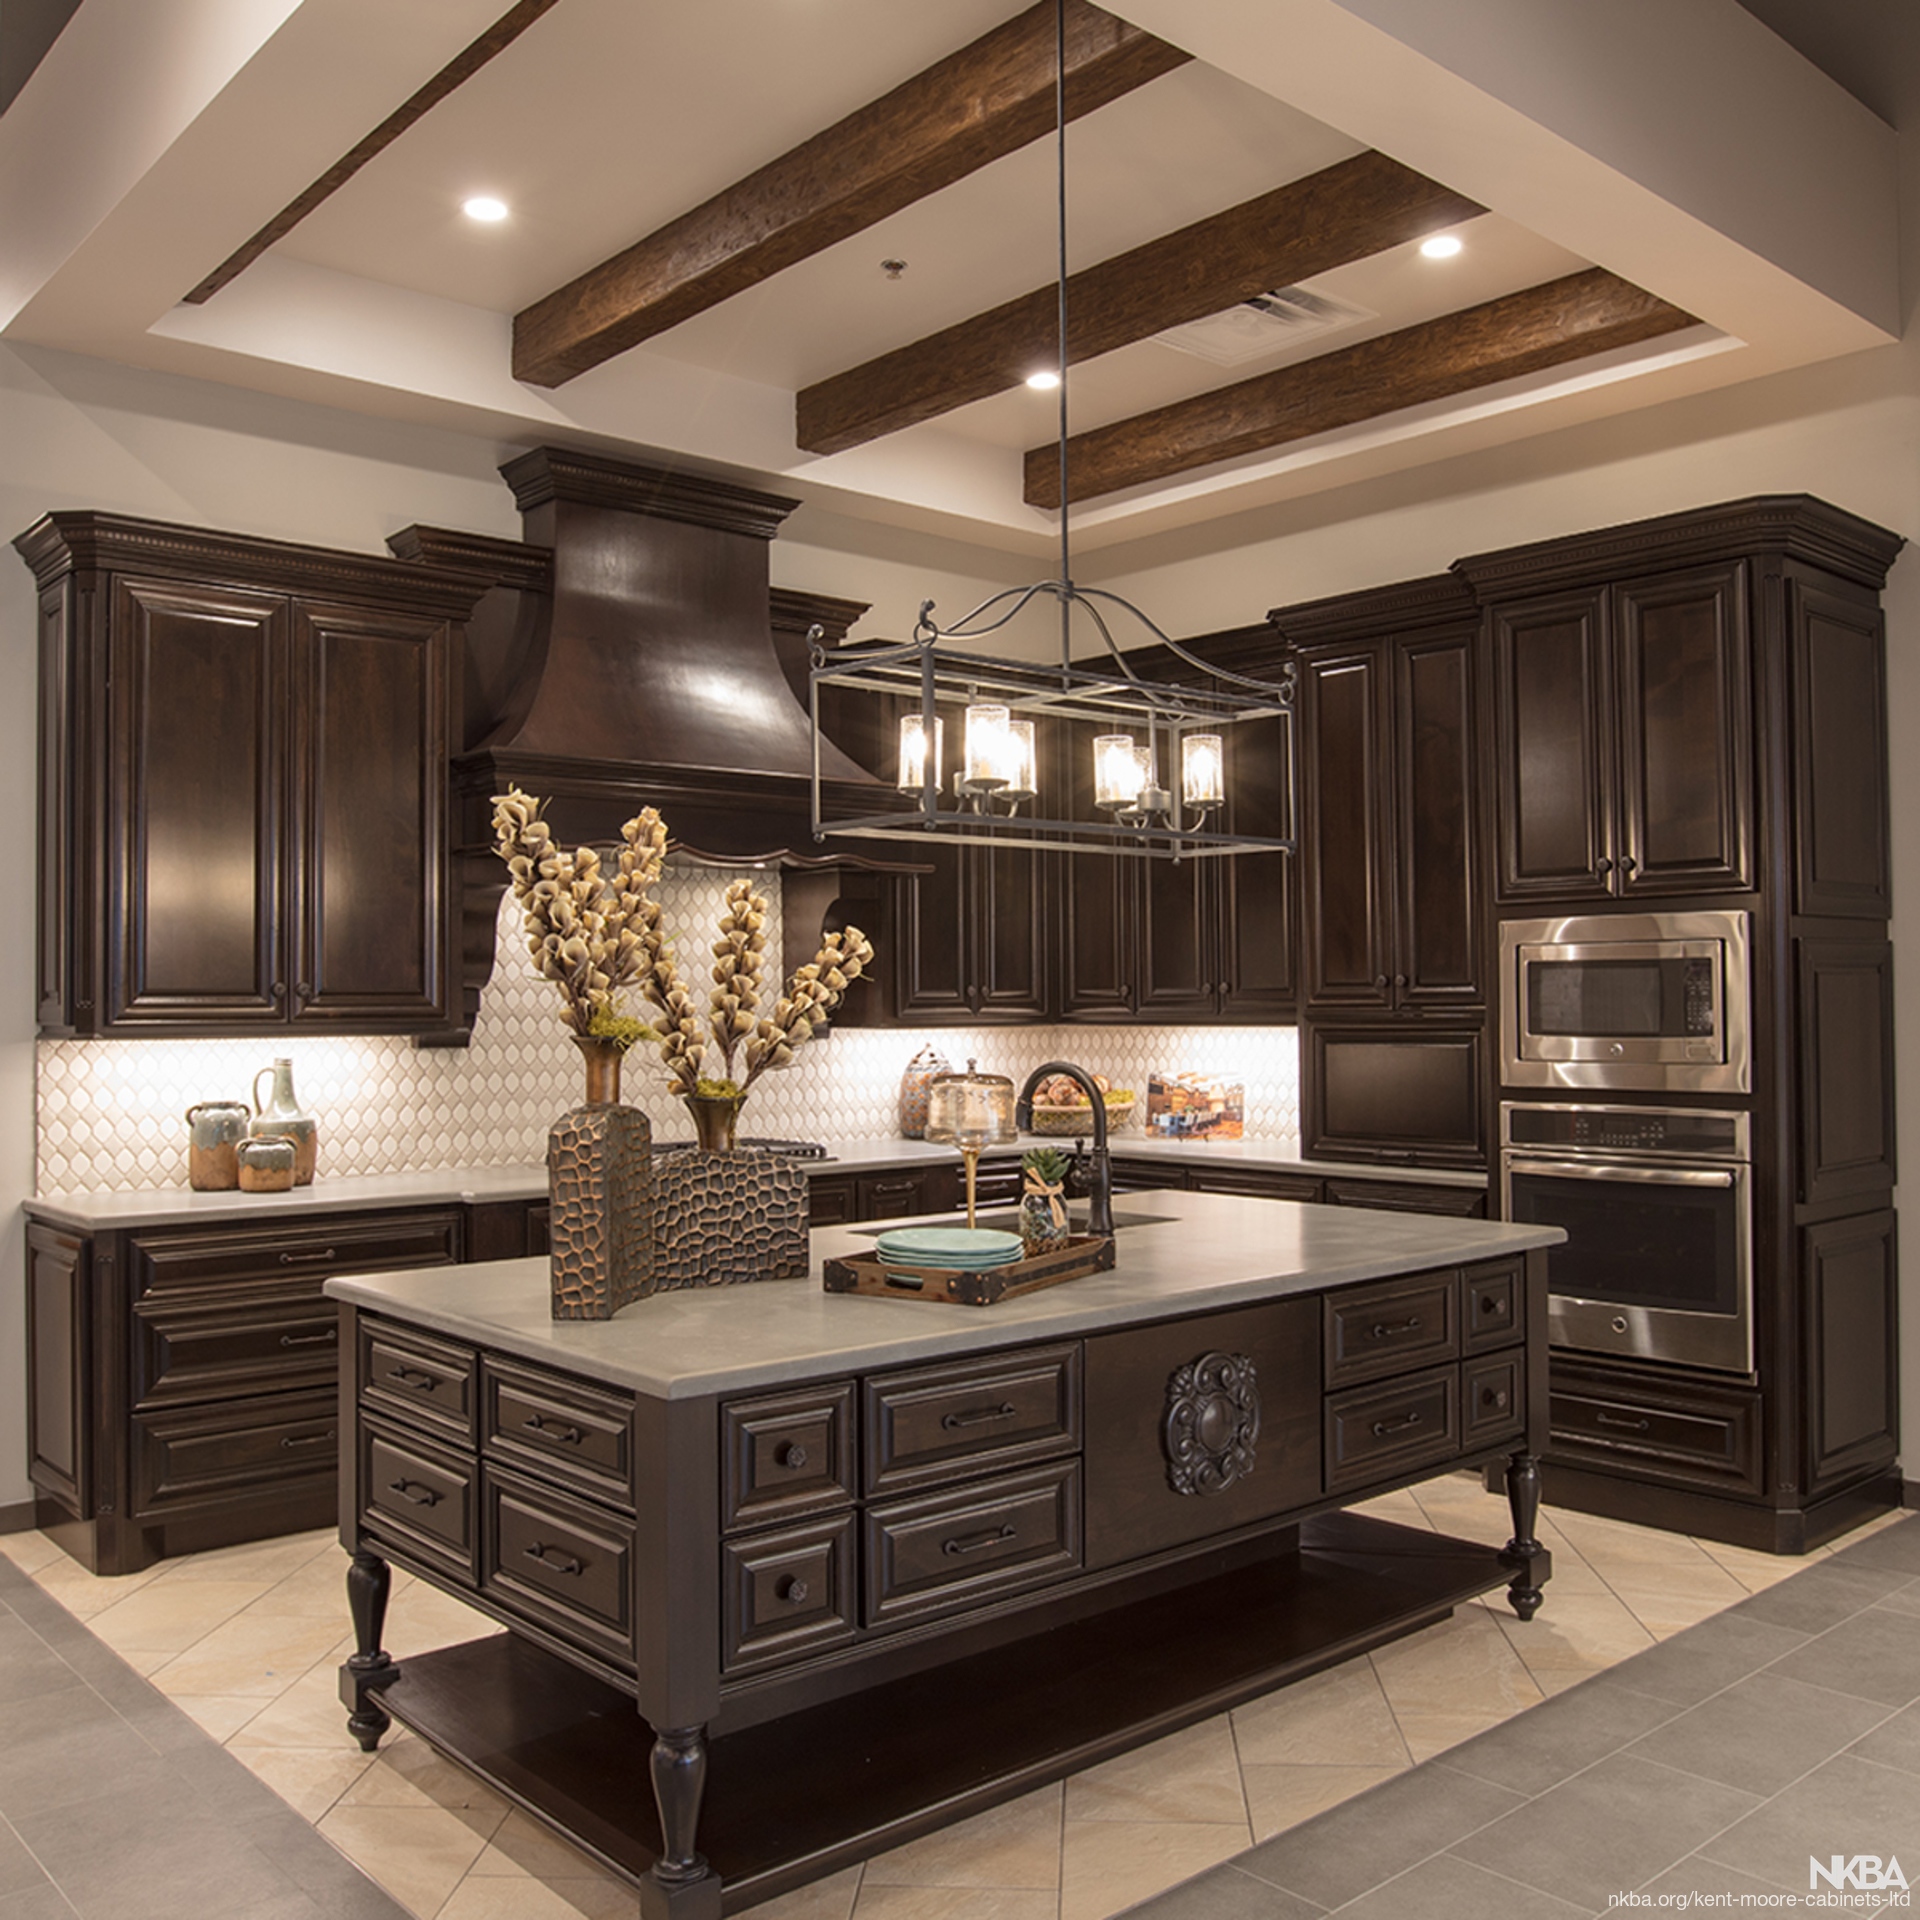 Tradition All American Kitchen - NKBA